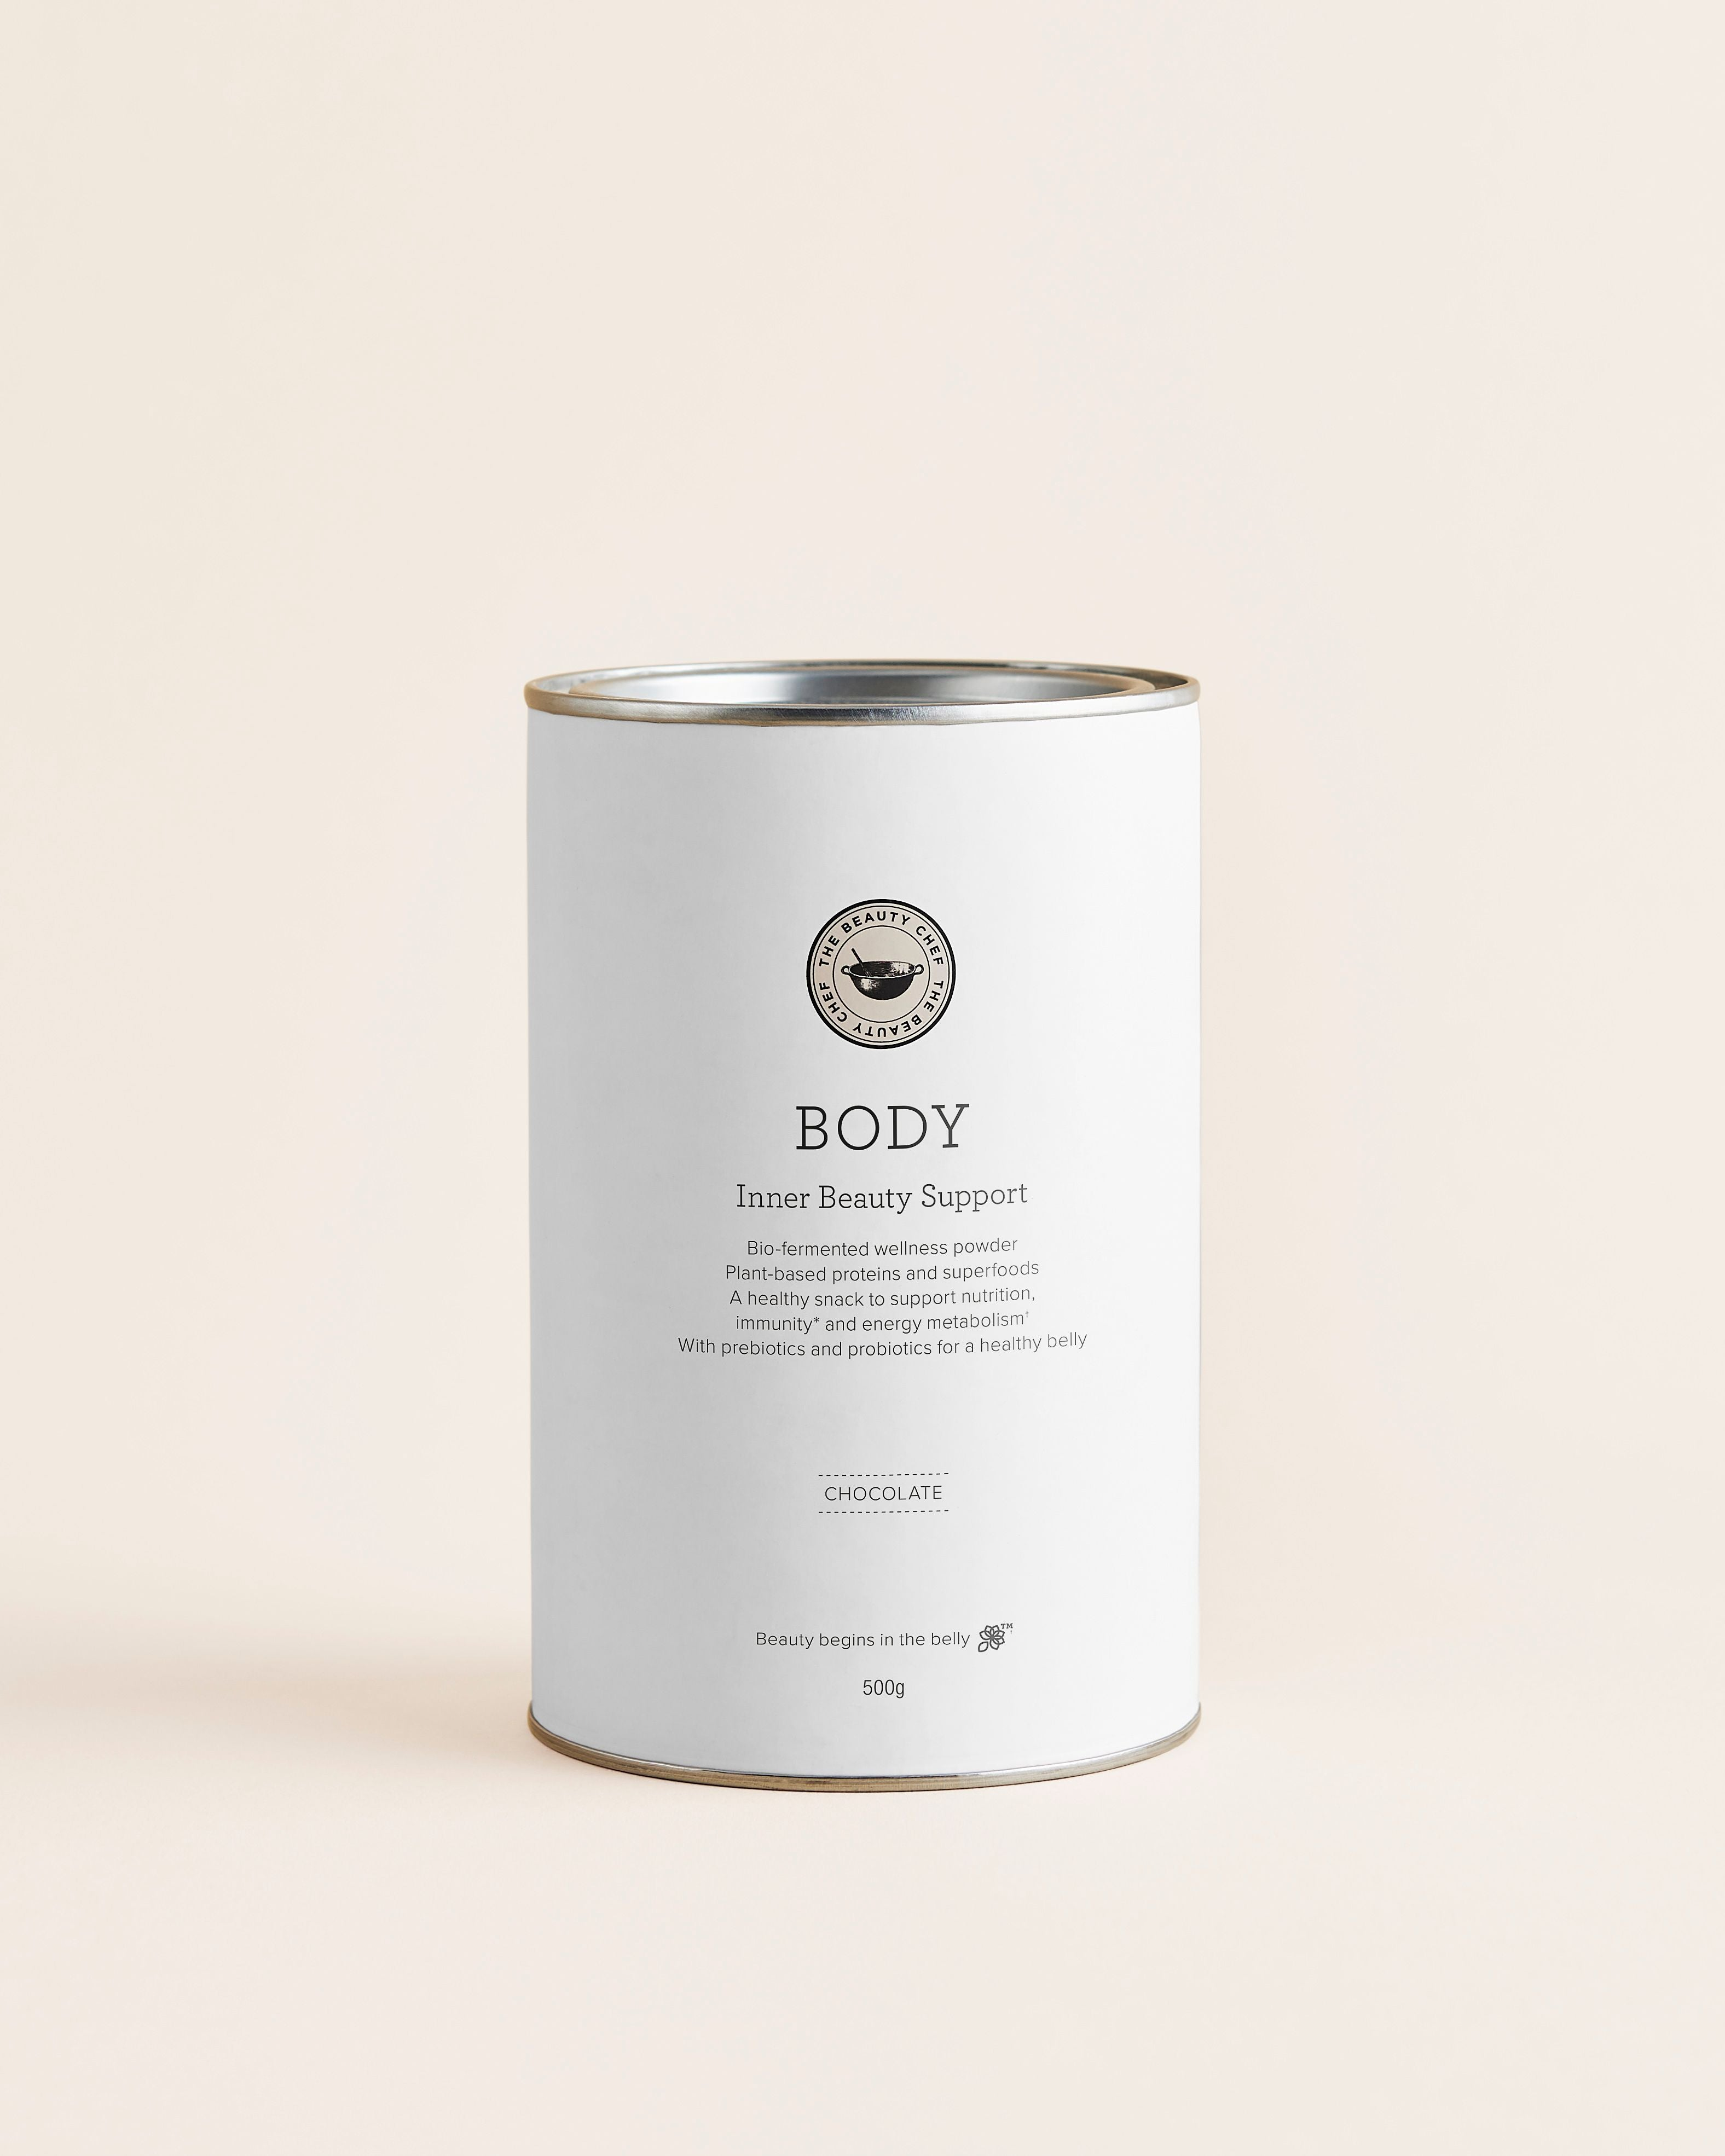 BODY Inner Beauty Support (Chocolate)